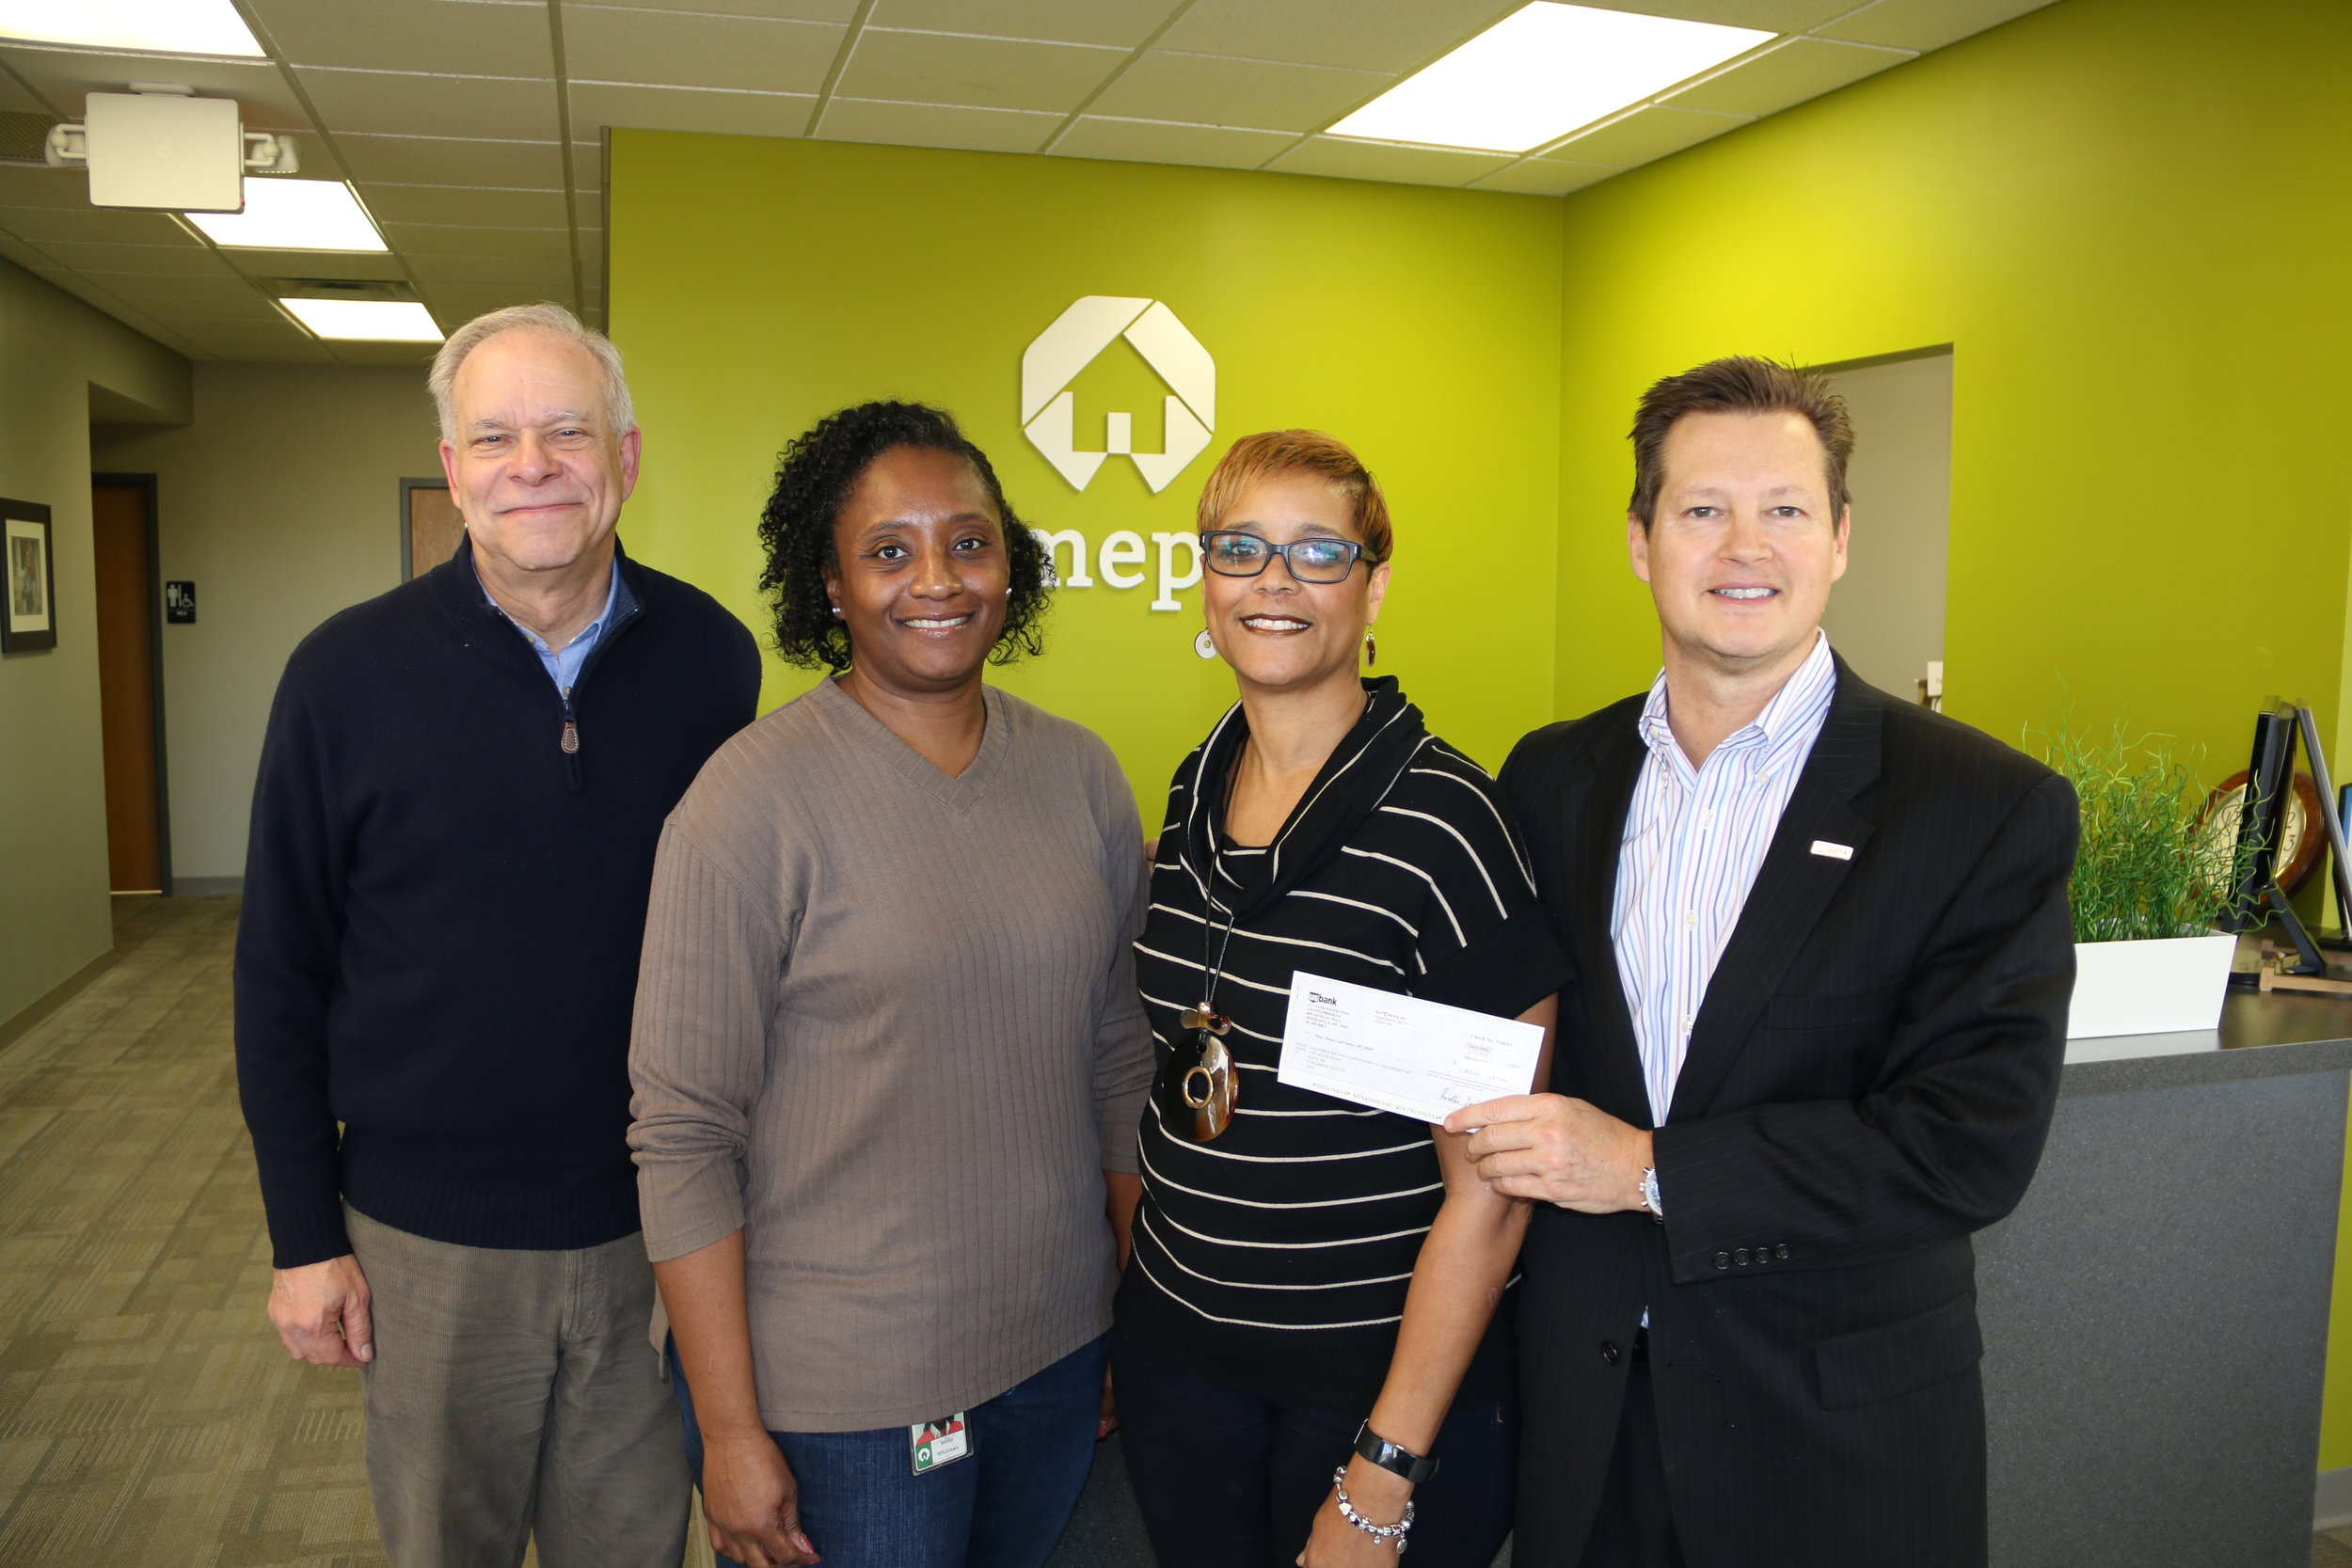 Homeport's Bruce Luecke, Netta Whitman and Laverne Price accept U.S. Bank gift from Stephen Bennett, right.